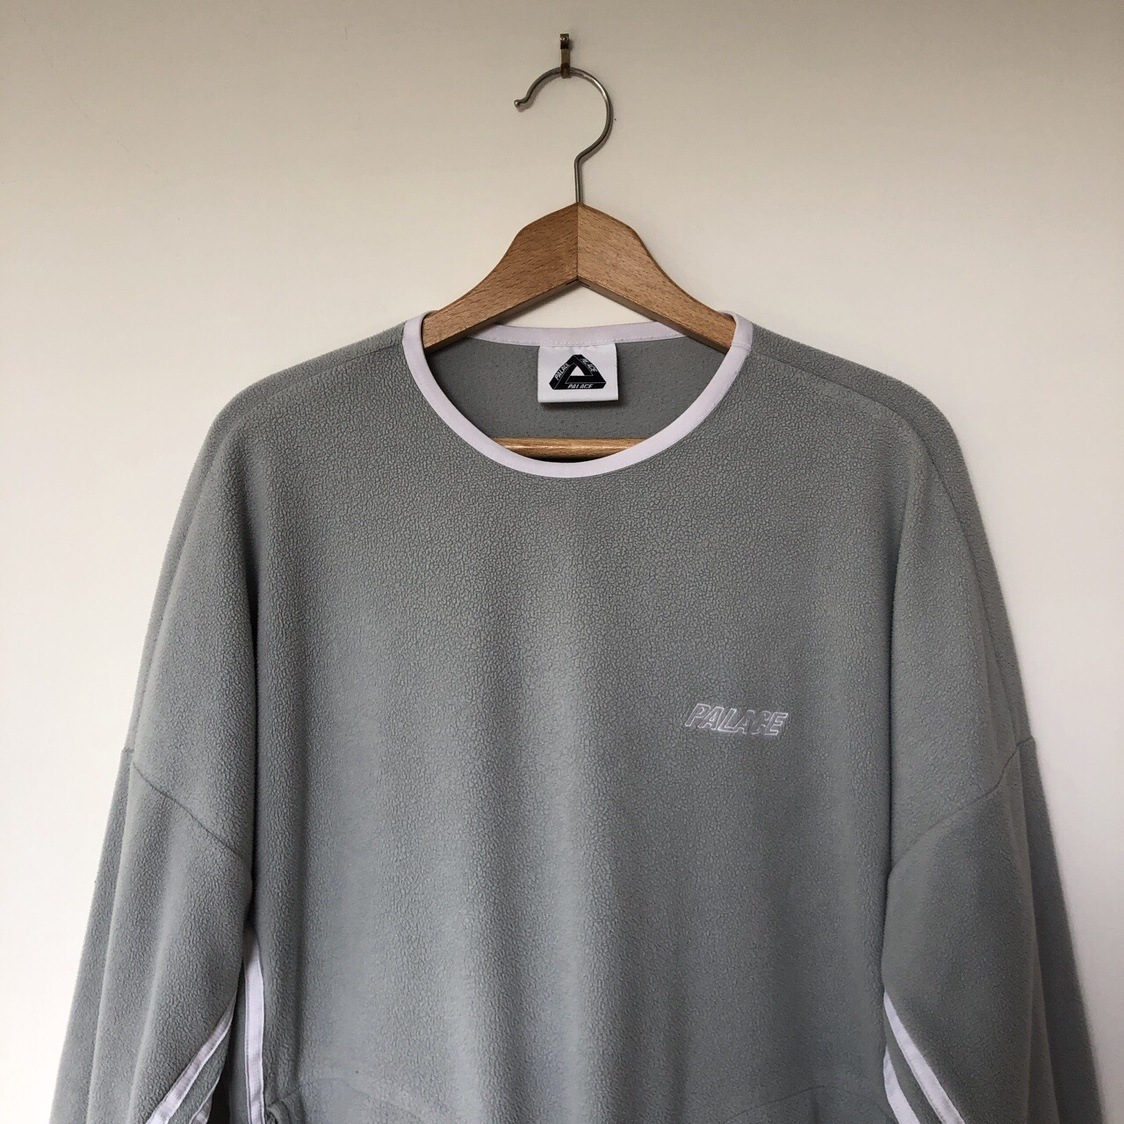 adidas fleece crewneck